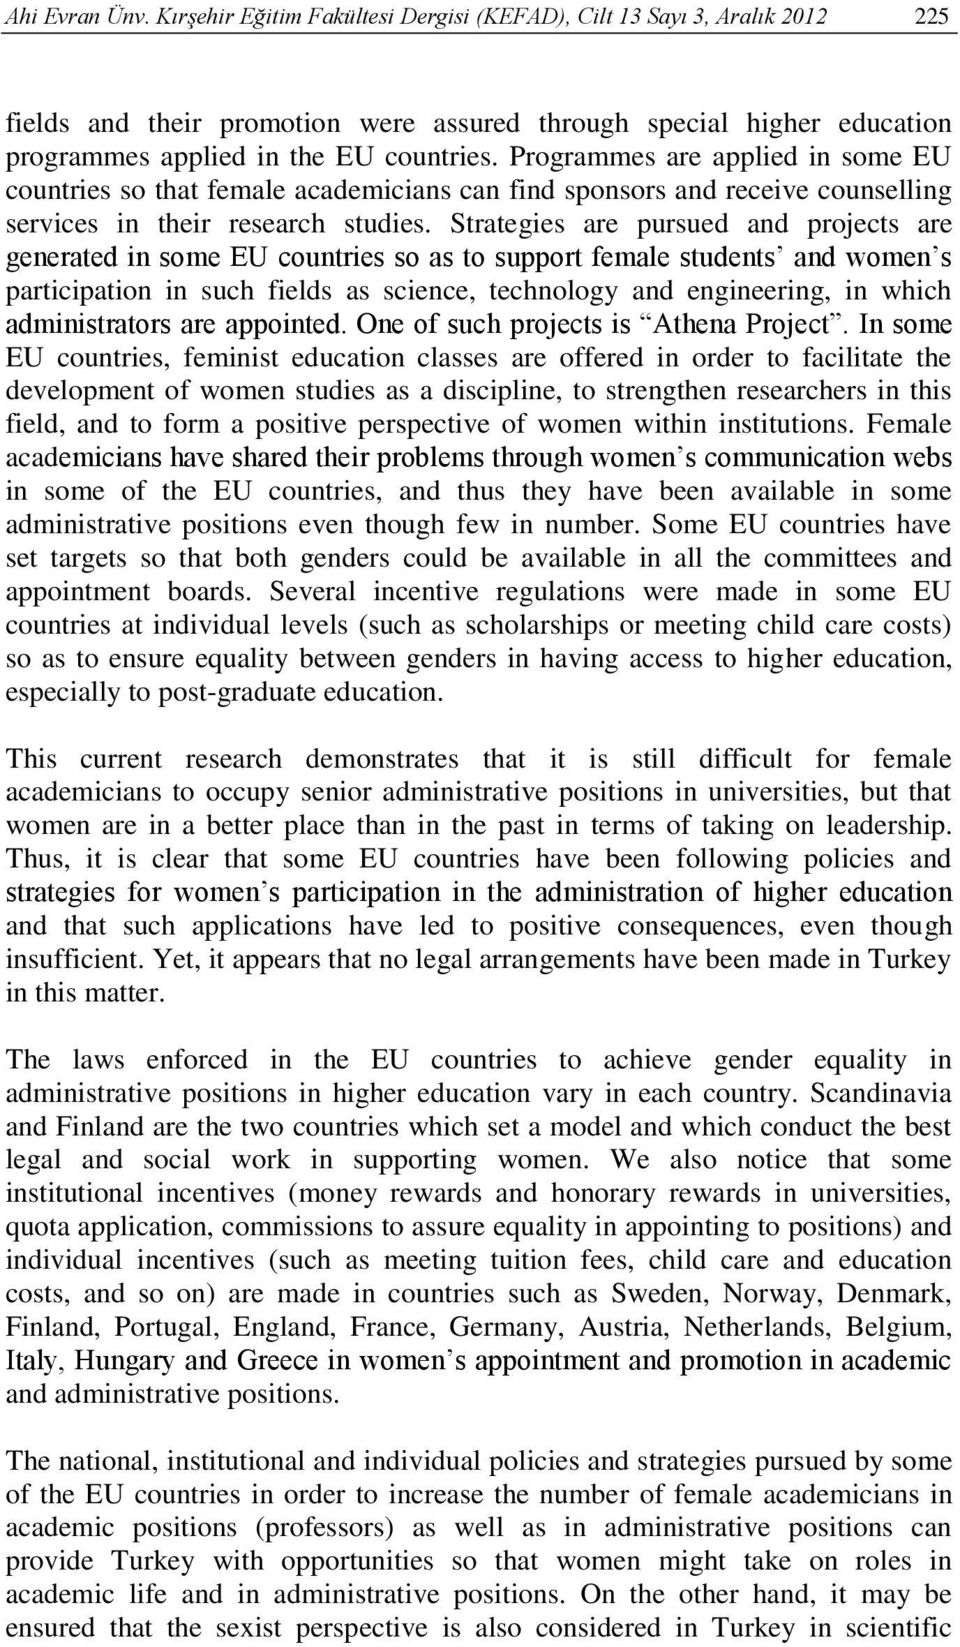 Programmes are applied in some EU countries so that female academicians can find sponsors and receive counselling services in their research studies.